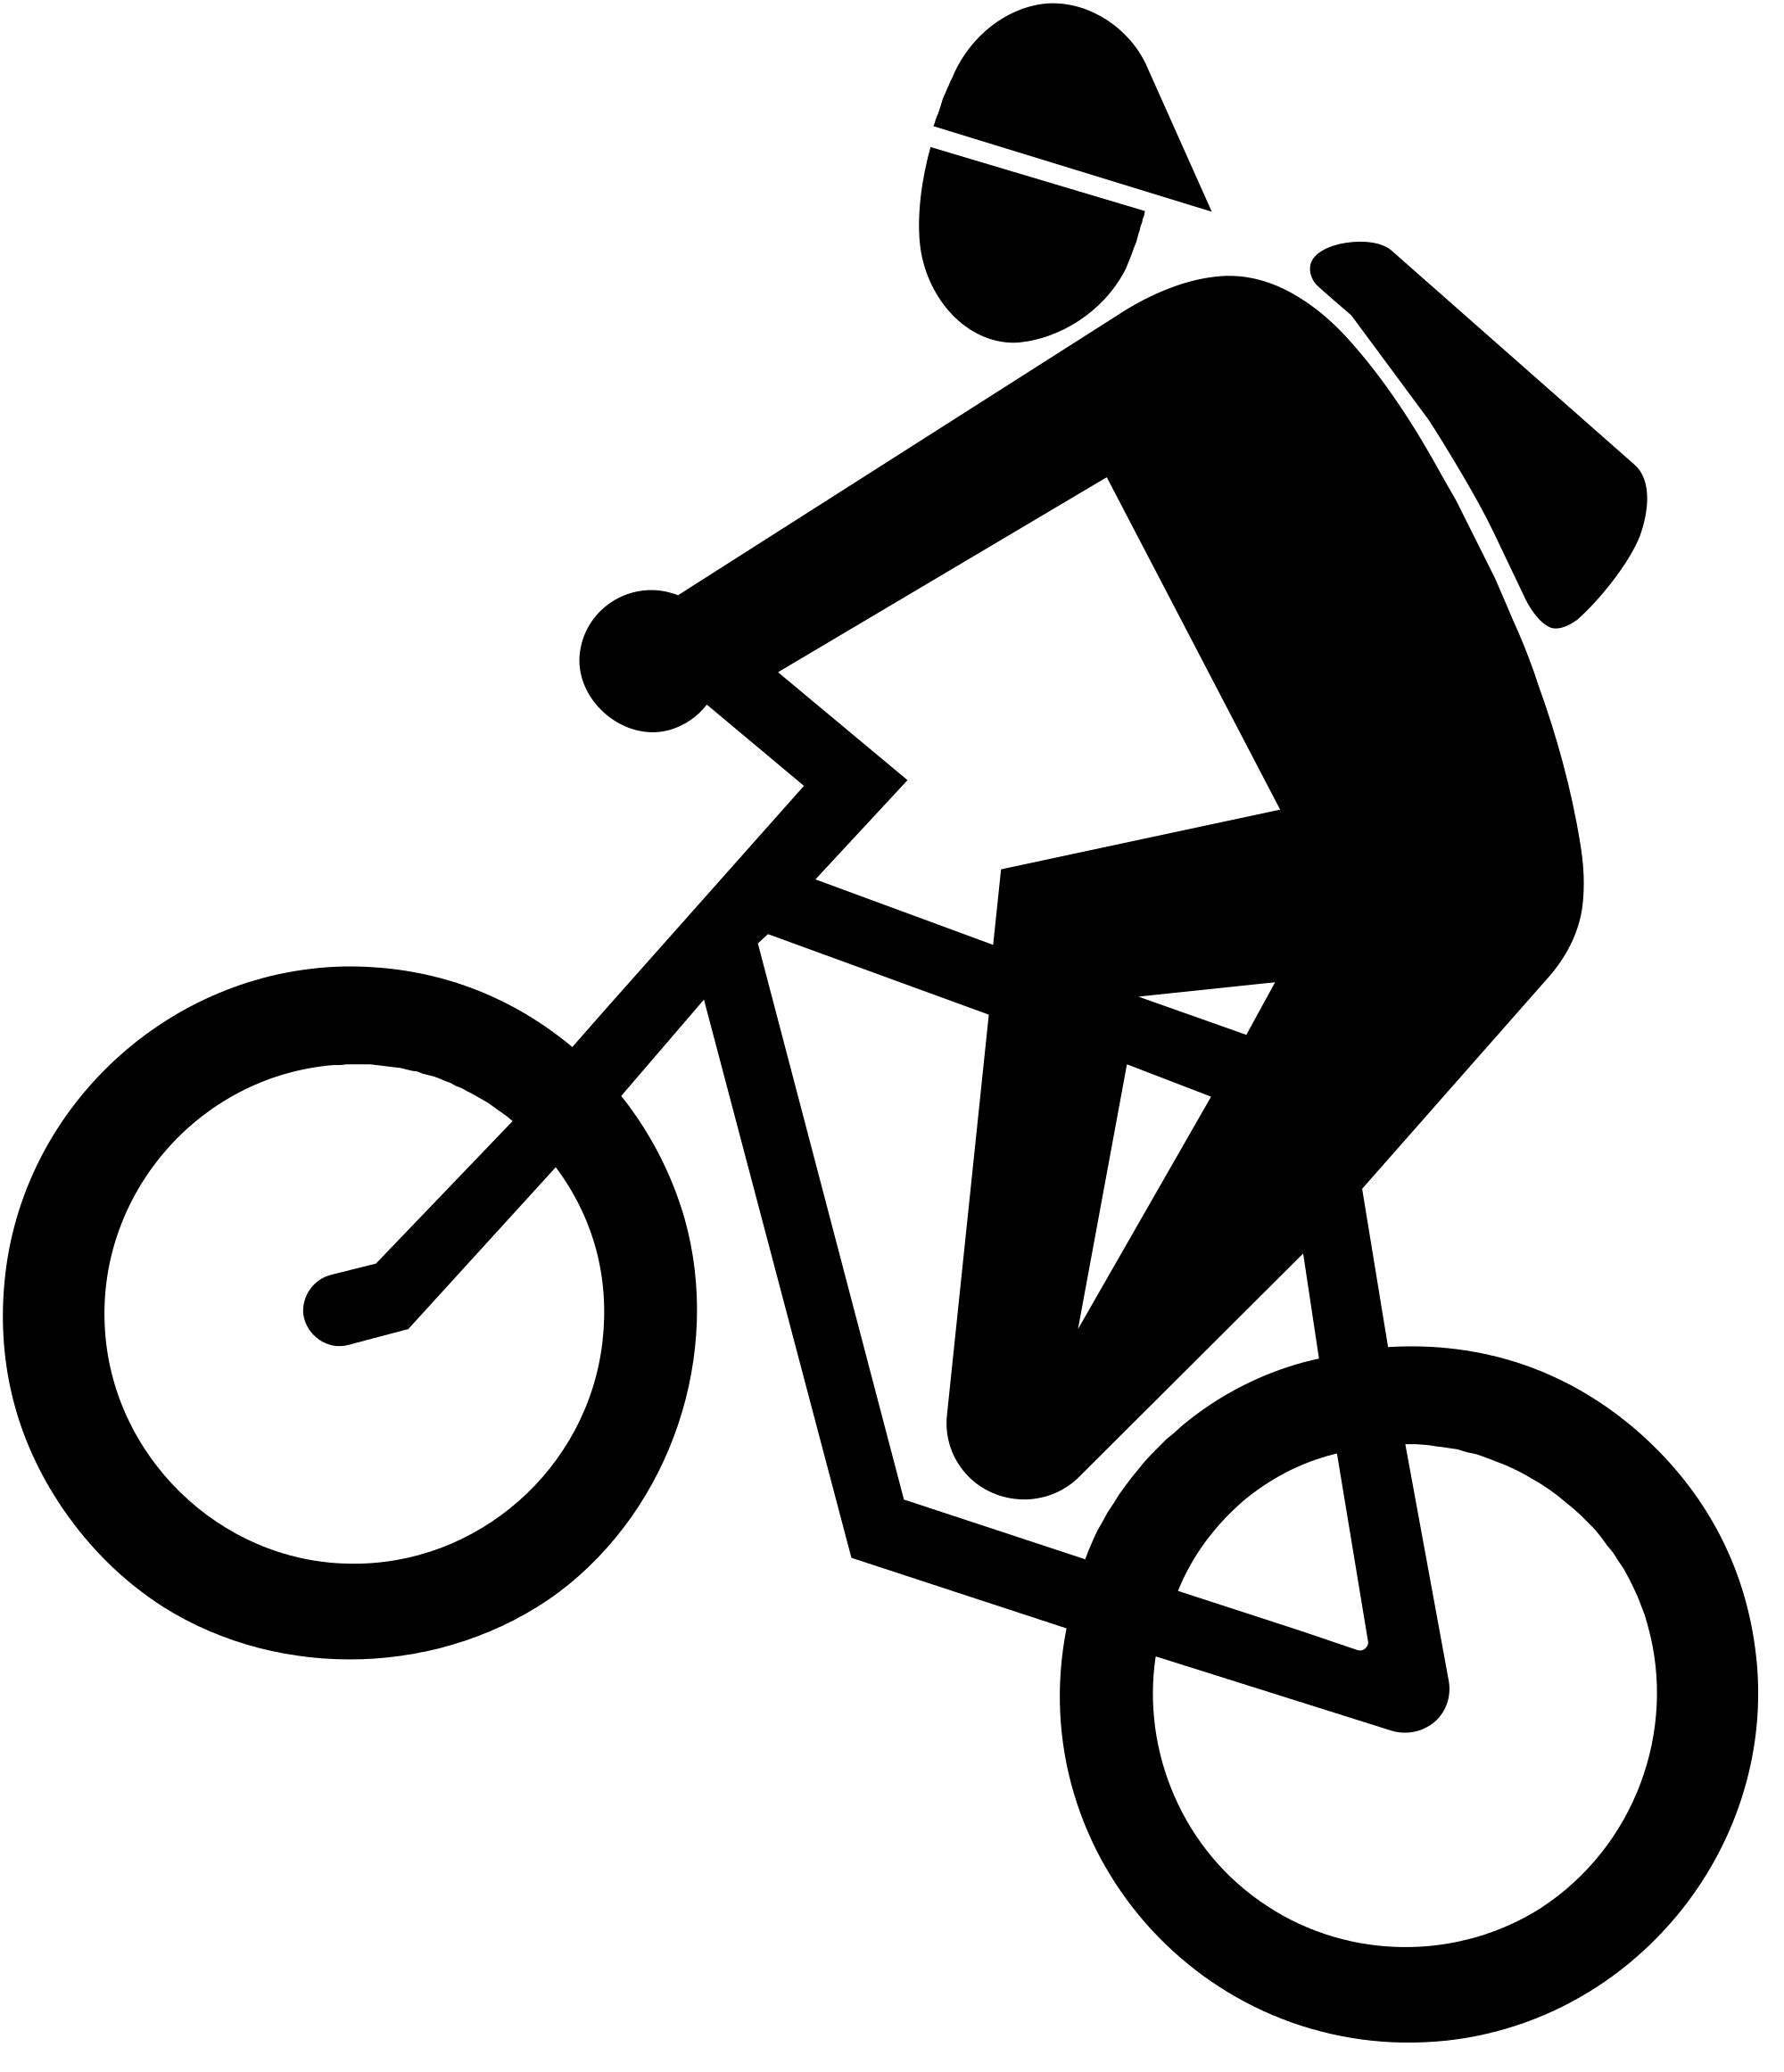 Bicycle clipart svg free.